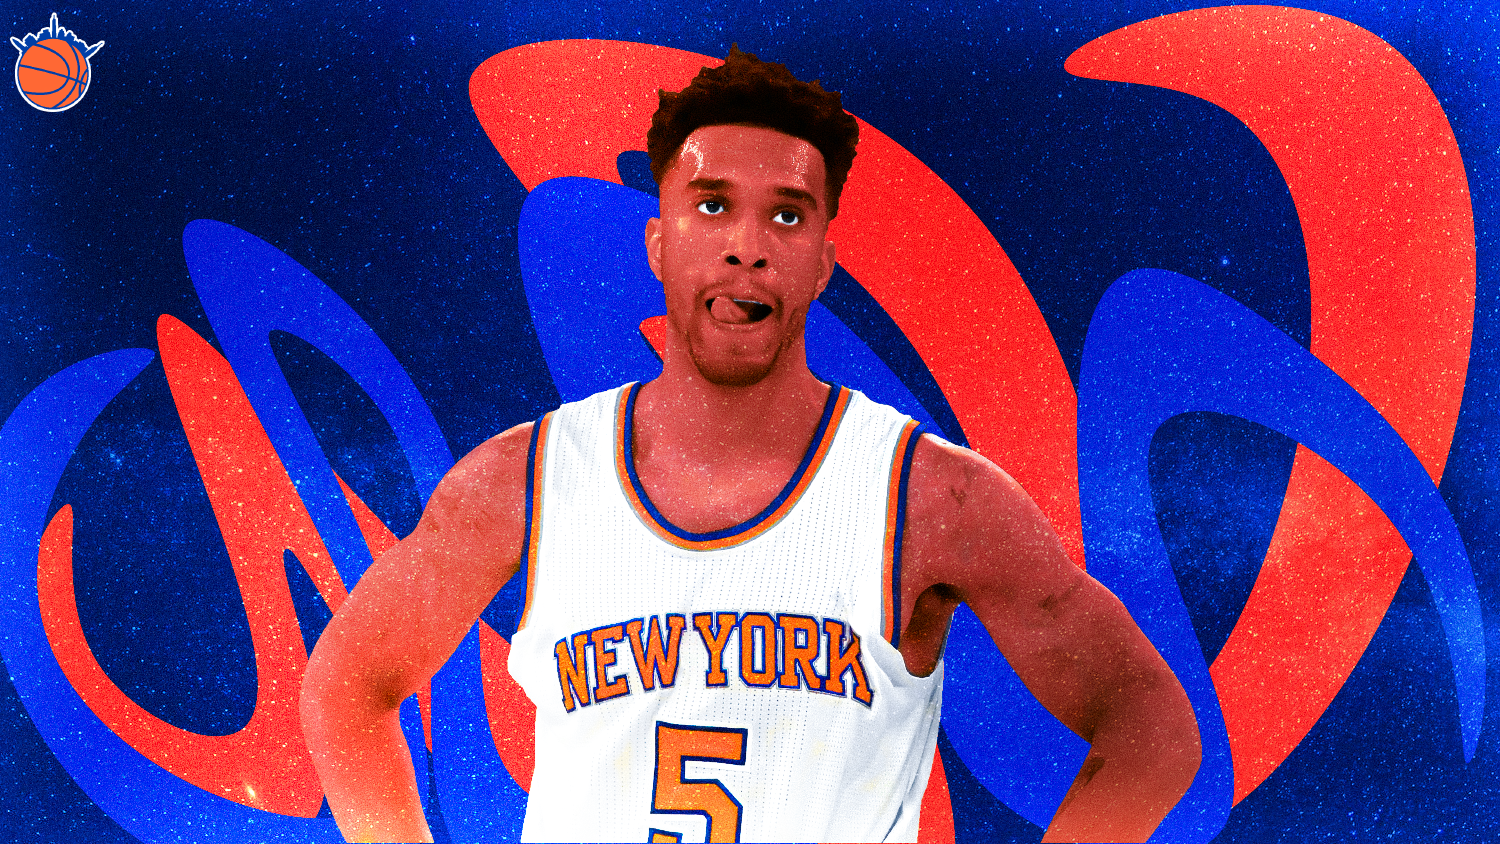 Has Courtney Lee Become the Odd Man Out?